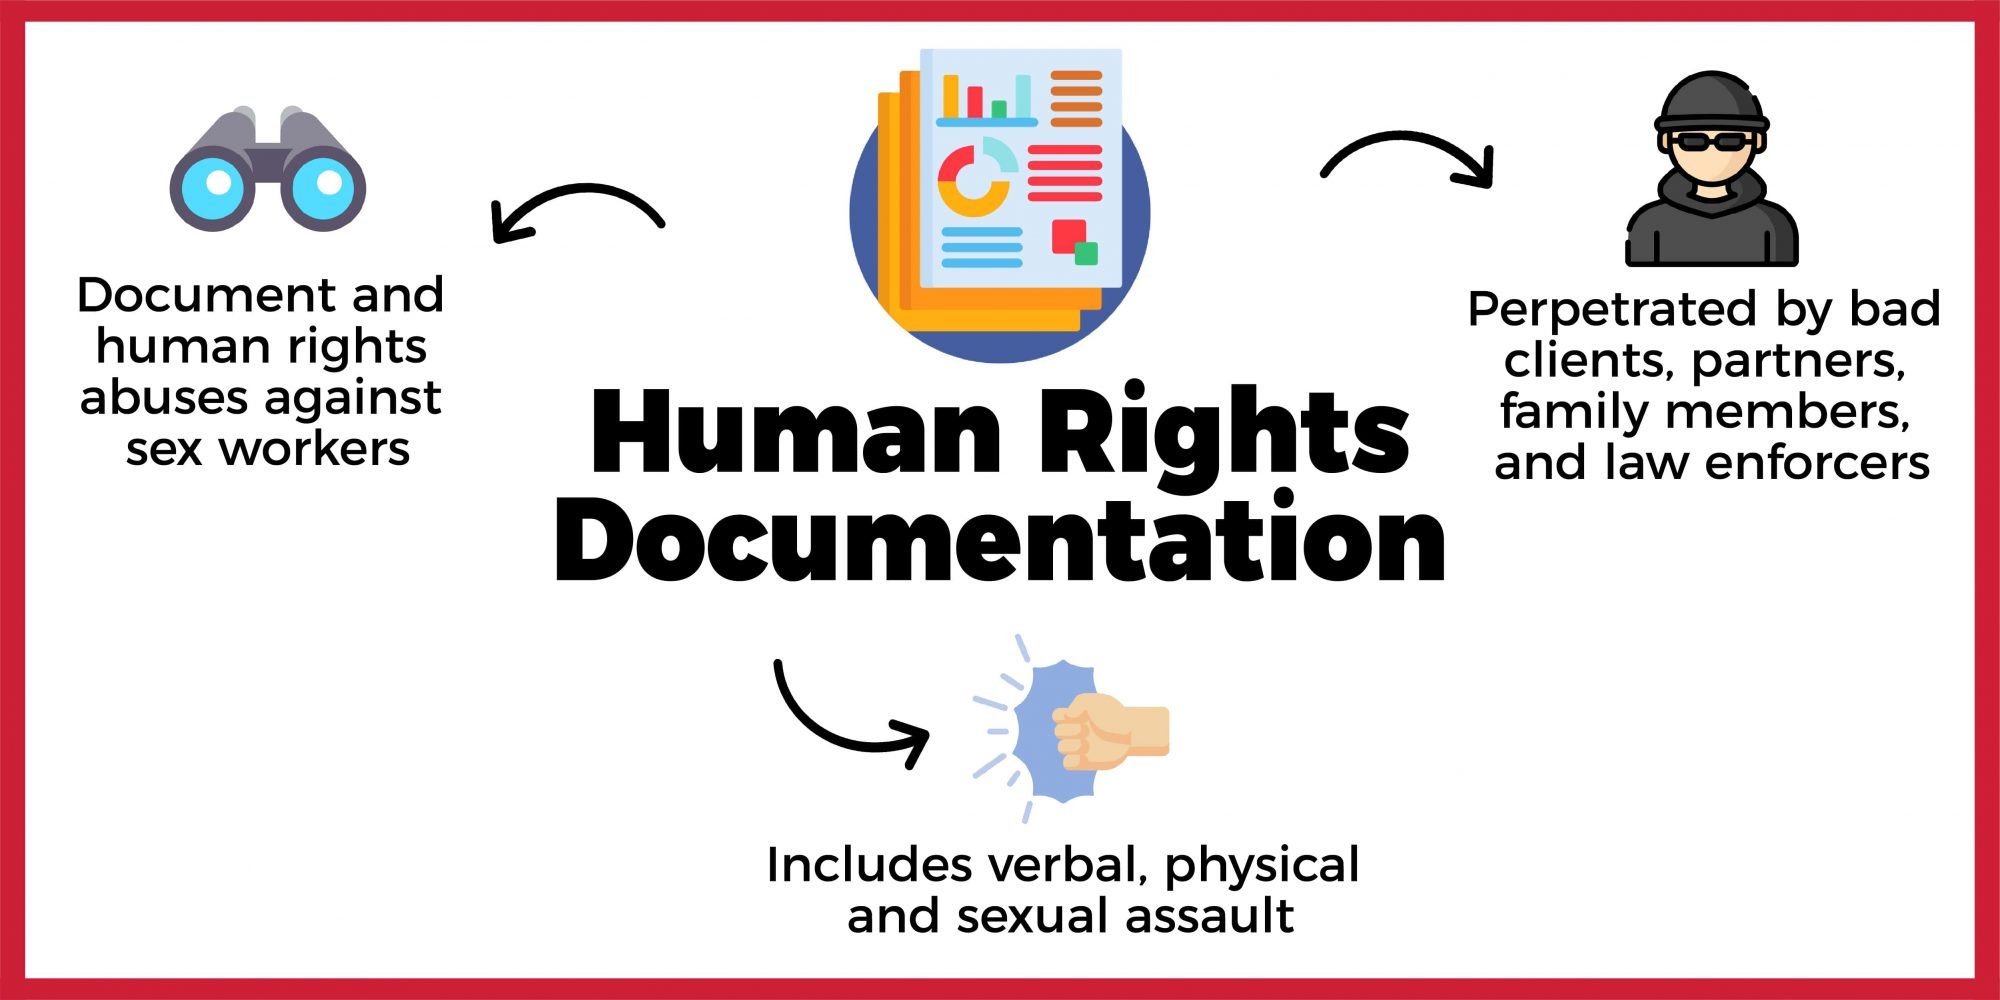 Human Rights Documentation